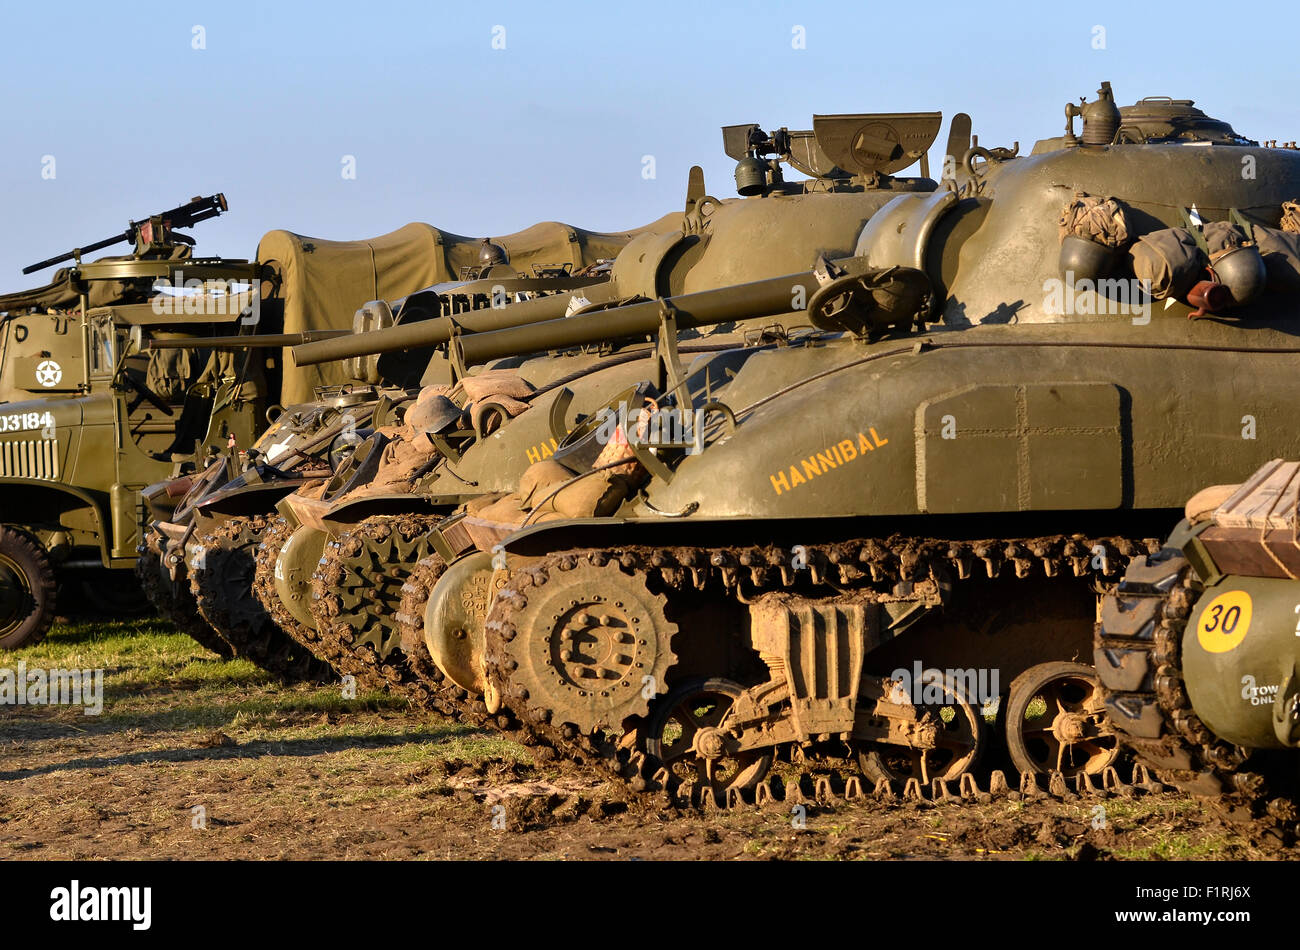 Us M4a1 Sherman Tanks Lined Up With M3 Stuart Tank And